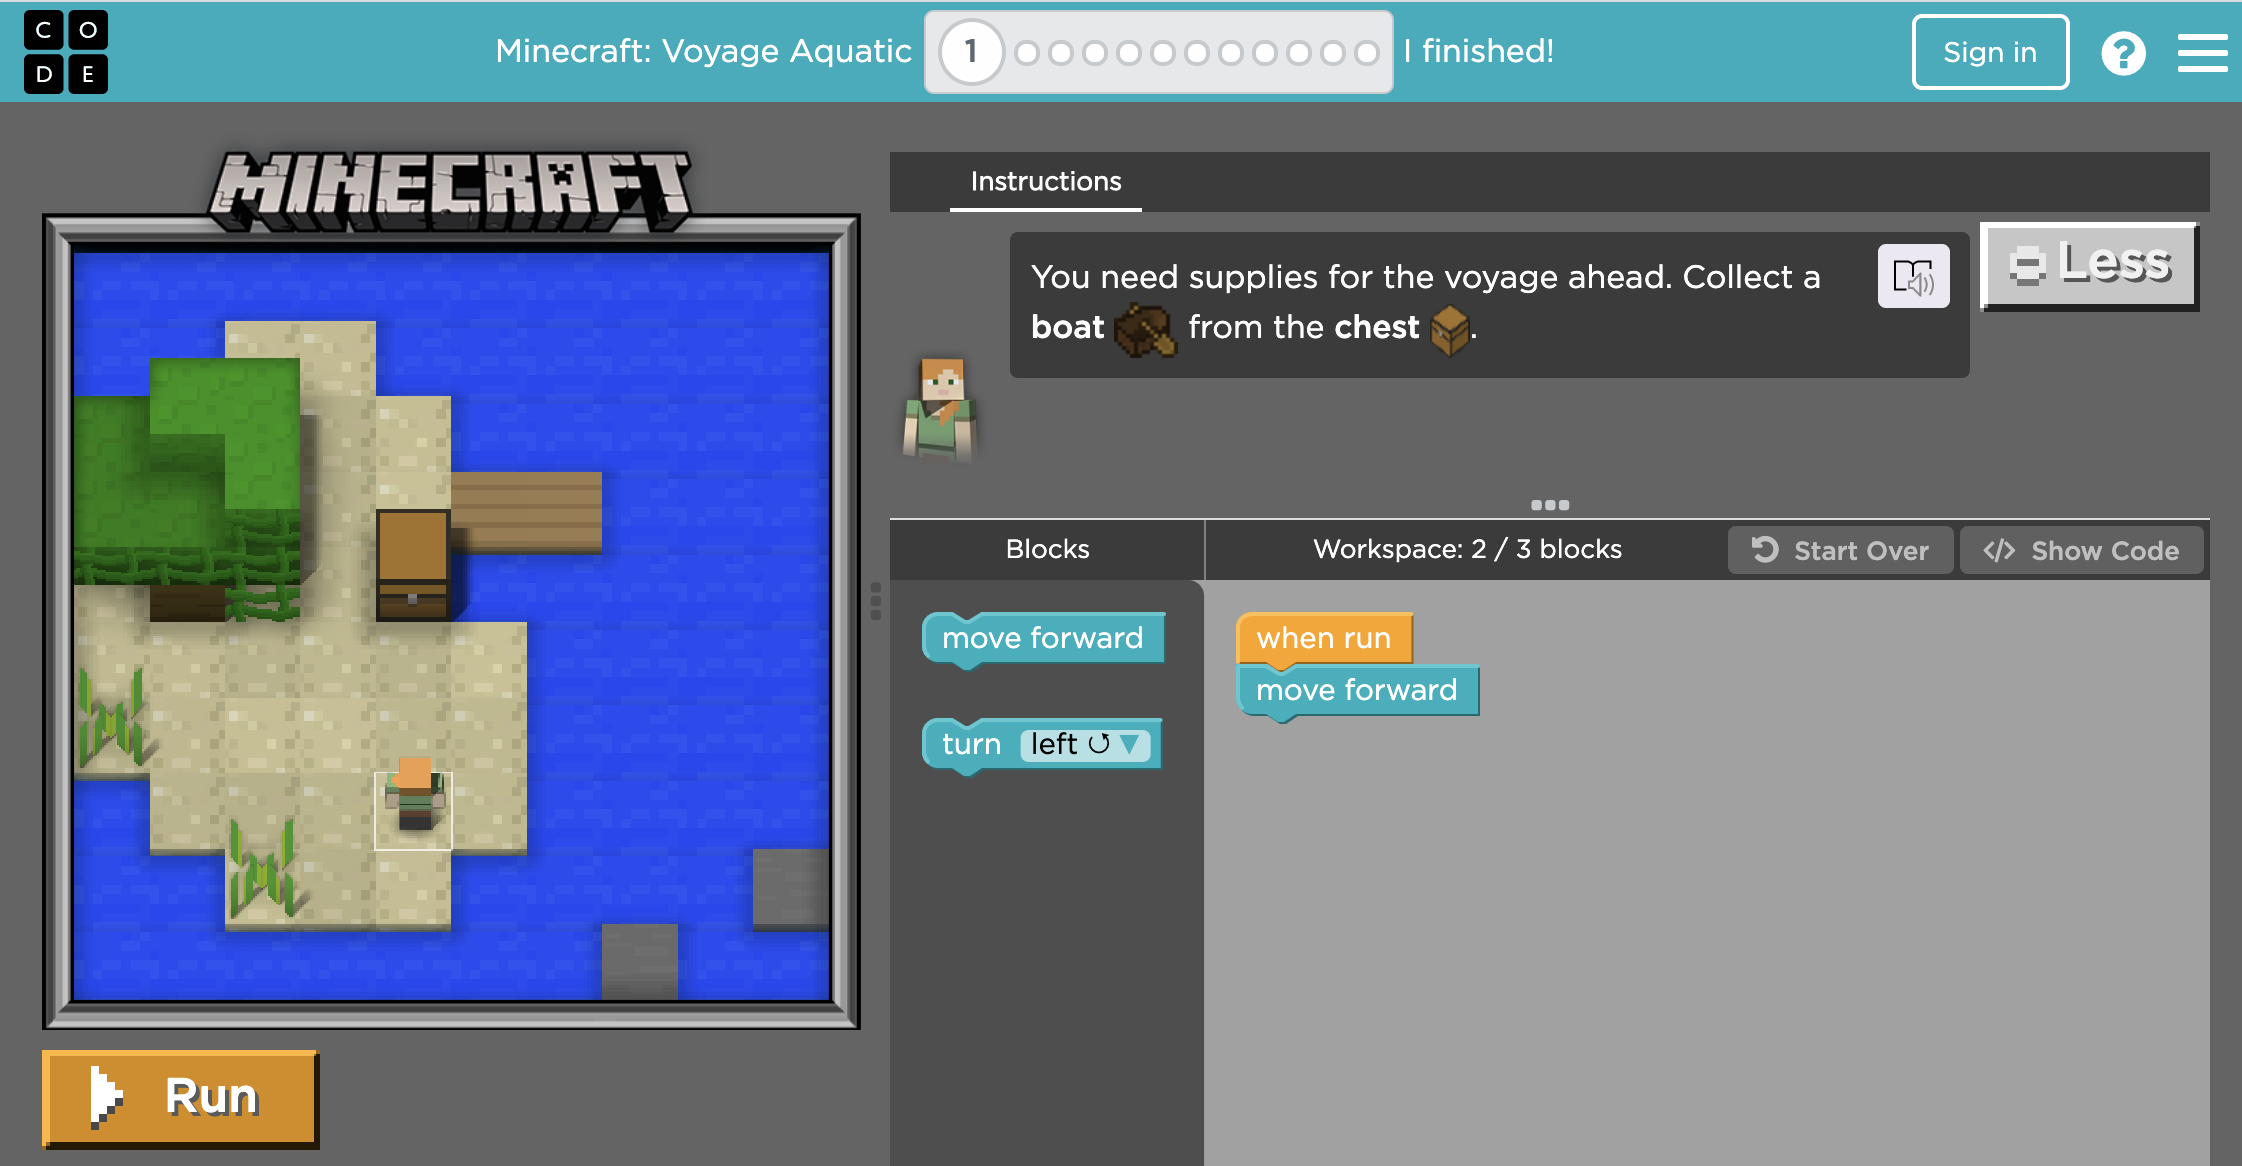 Learn to code with a Minecraft world and characters.